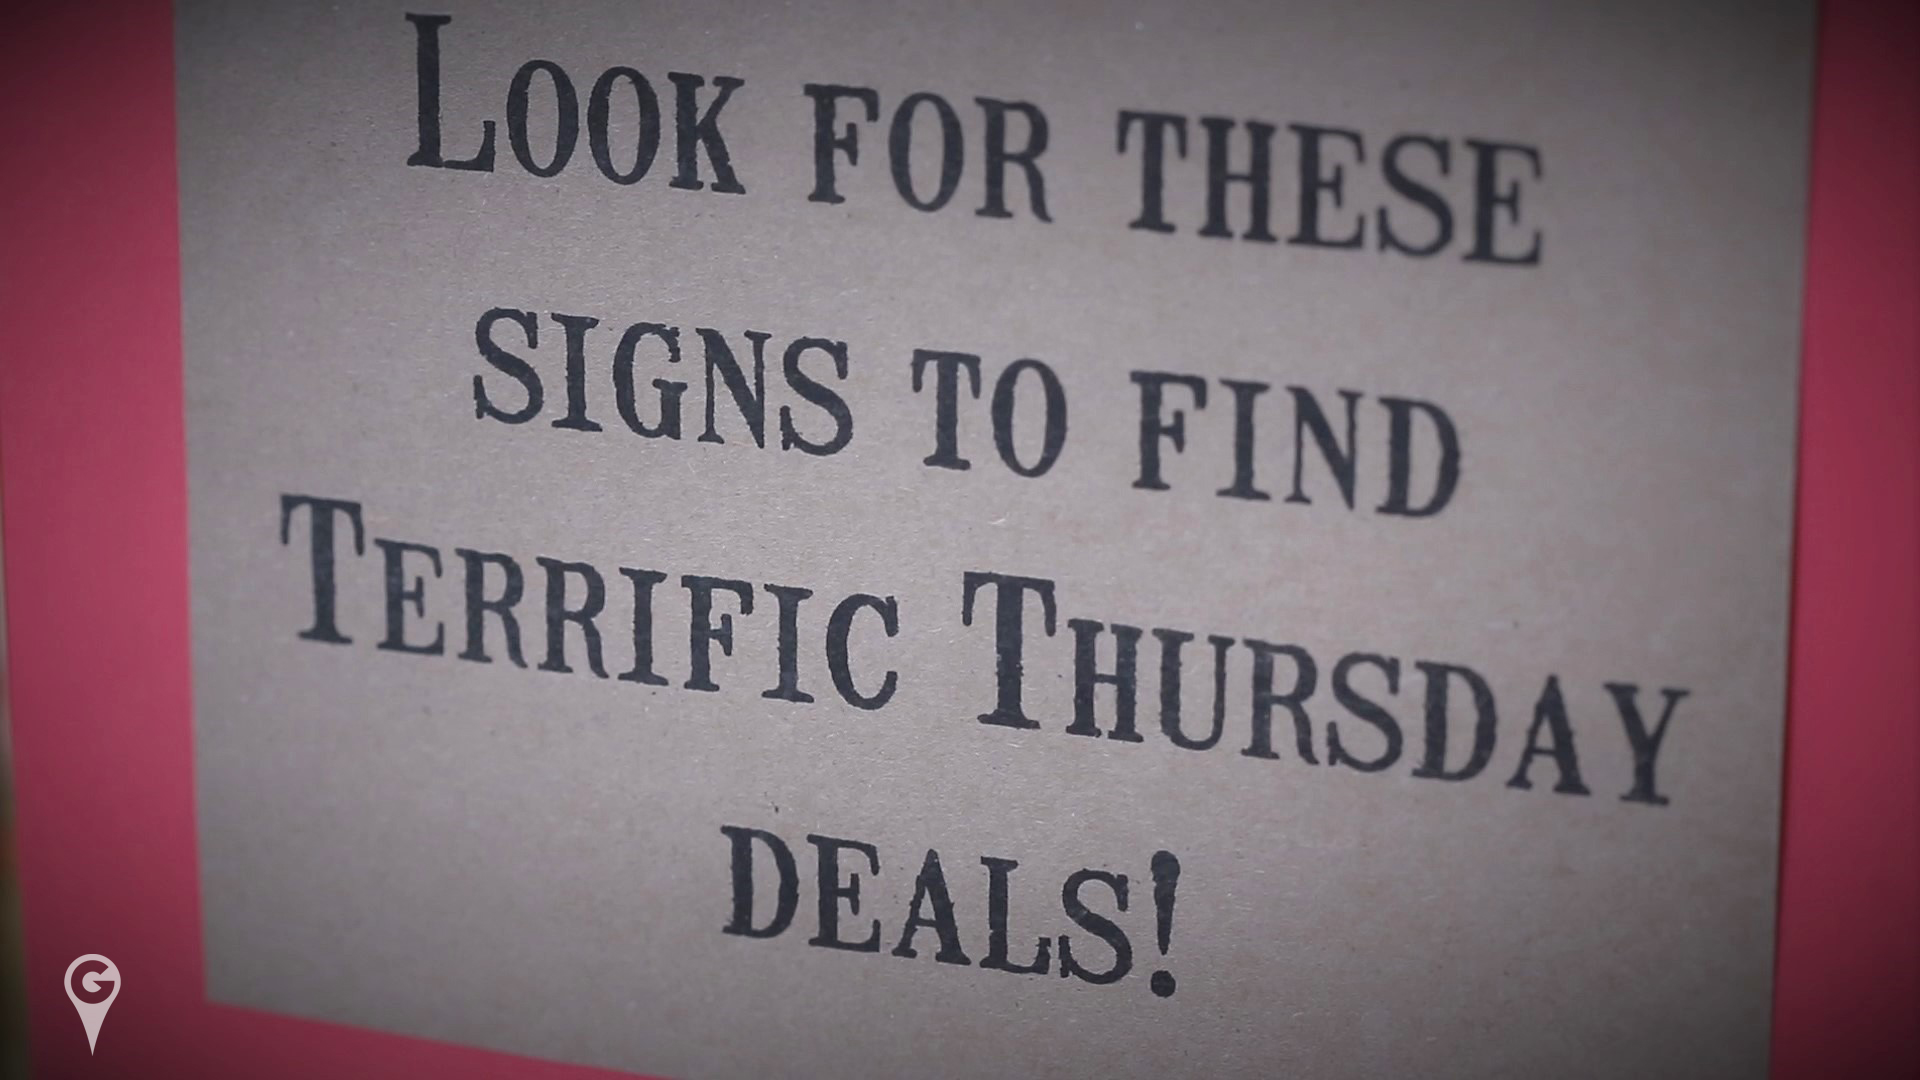 Thursday-Deals